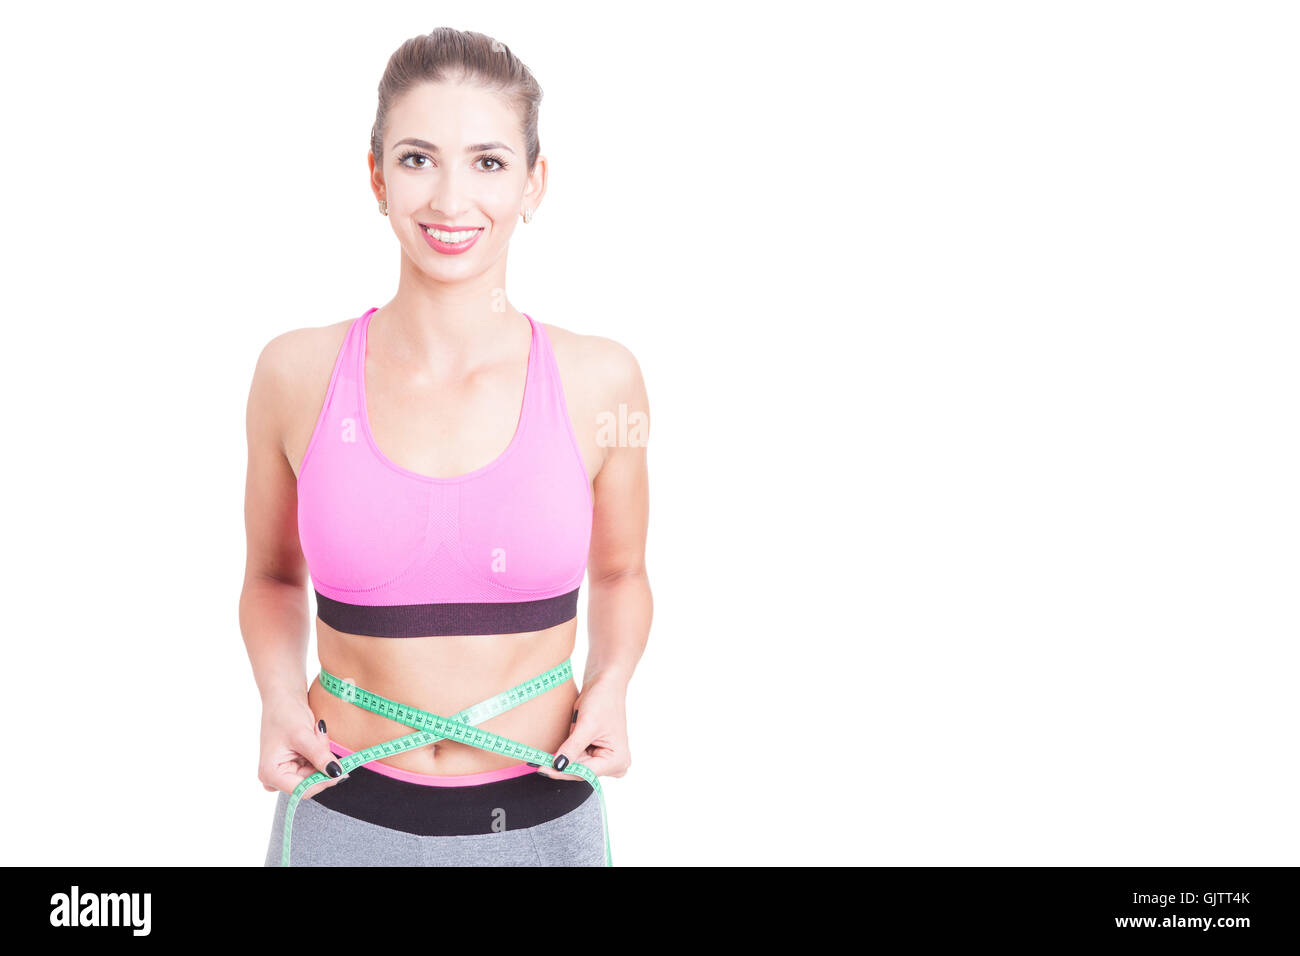 Girl at gym holding centimeter around waist isolated on white background with copy text space - Stock Image